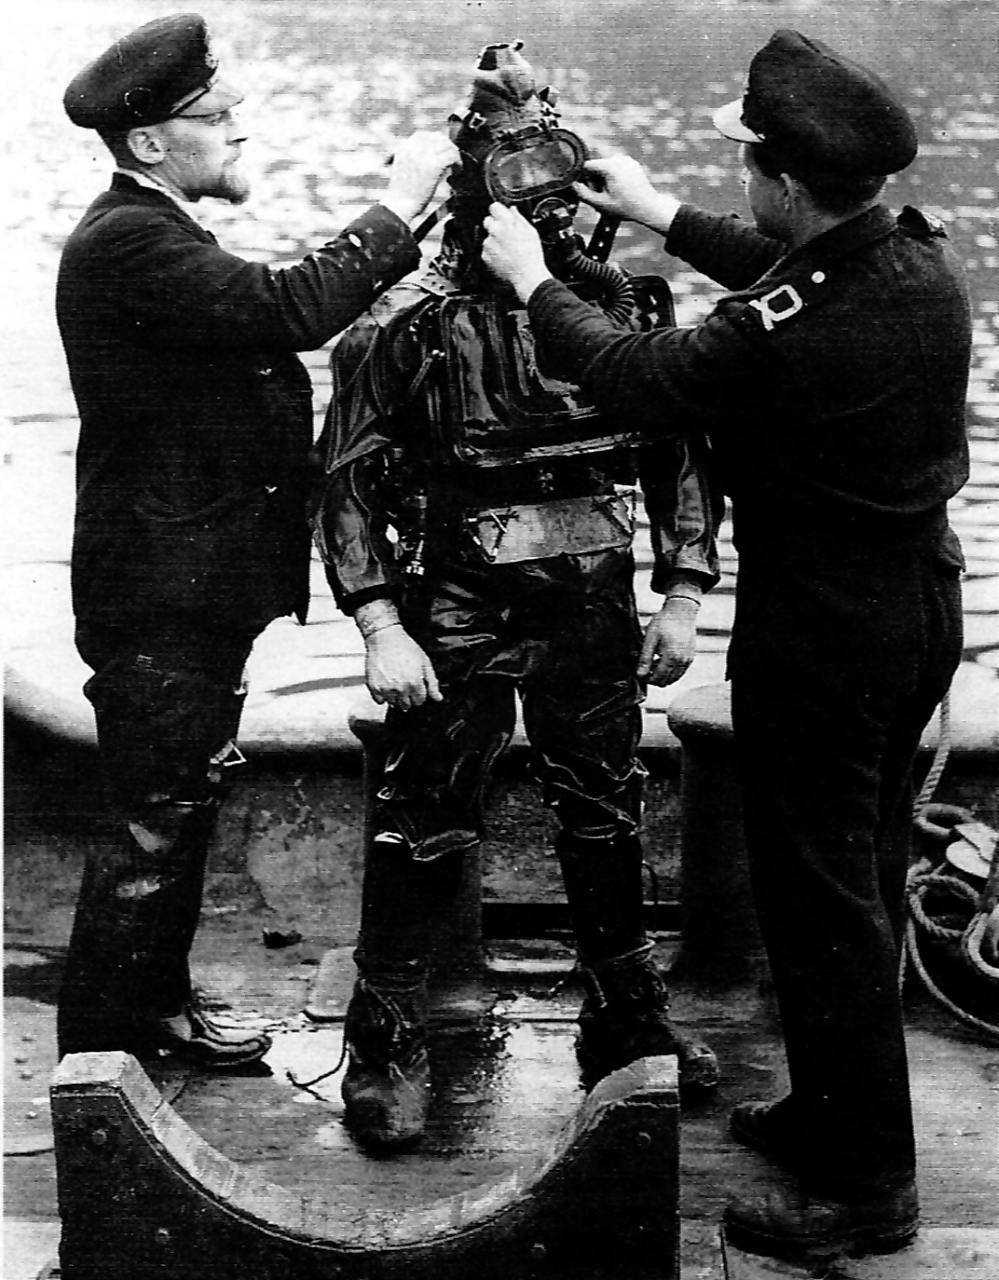 Charioteer frogman being prepared to dive